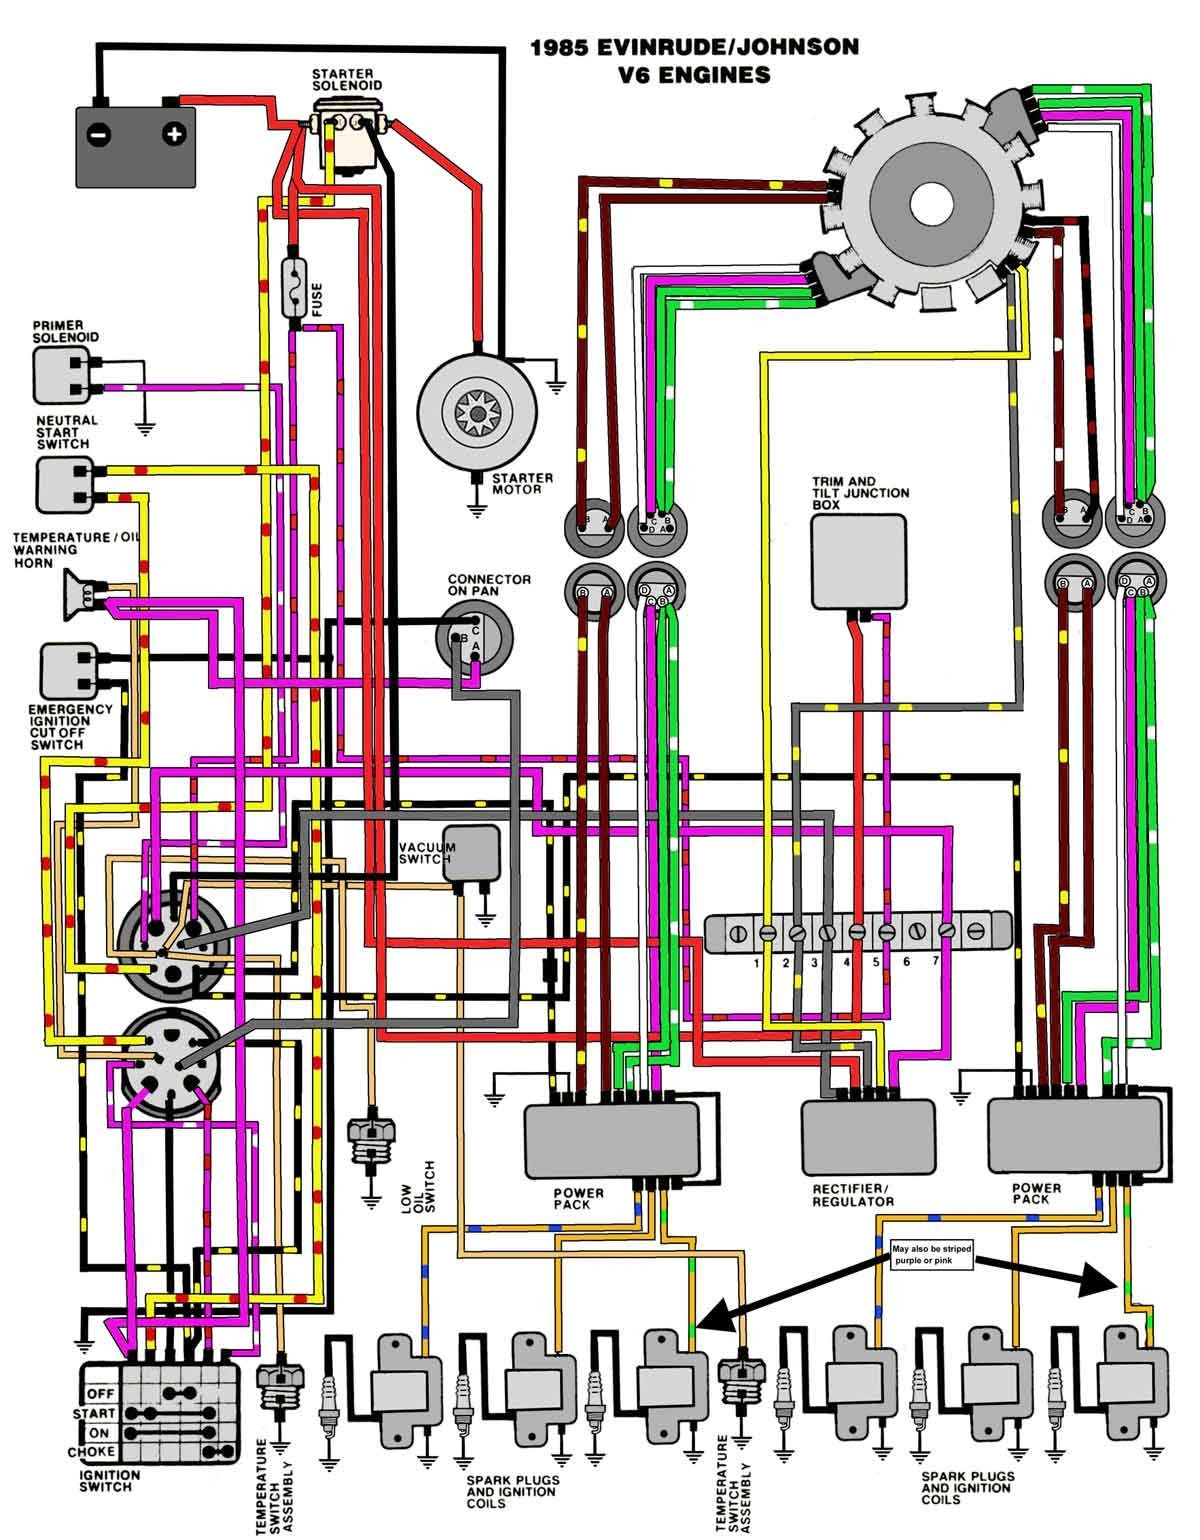 70 Hp Johnson Diagram Circuit Connection Diagram \u2022 Johnson 55 Hp Wiring  Diagram 1975 70 Hp Johnson Wiring Diagram